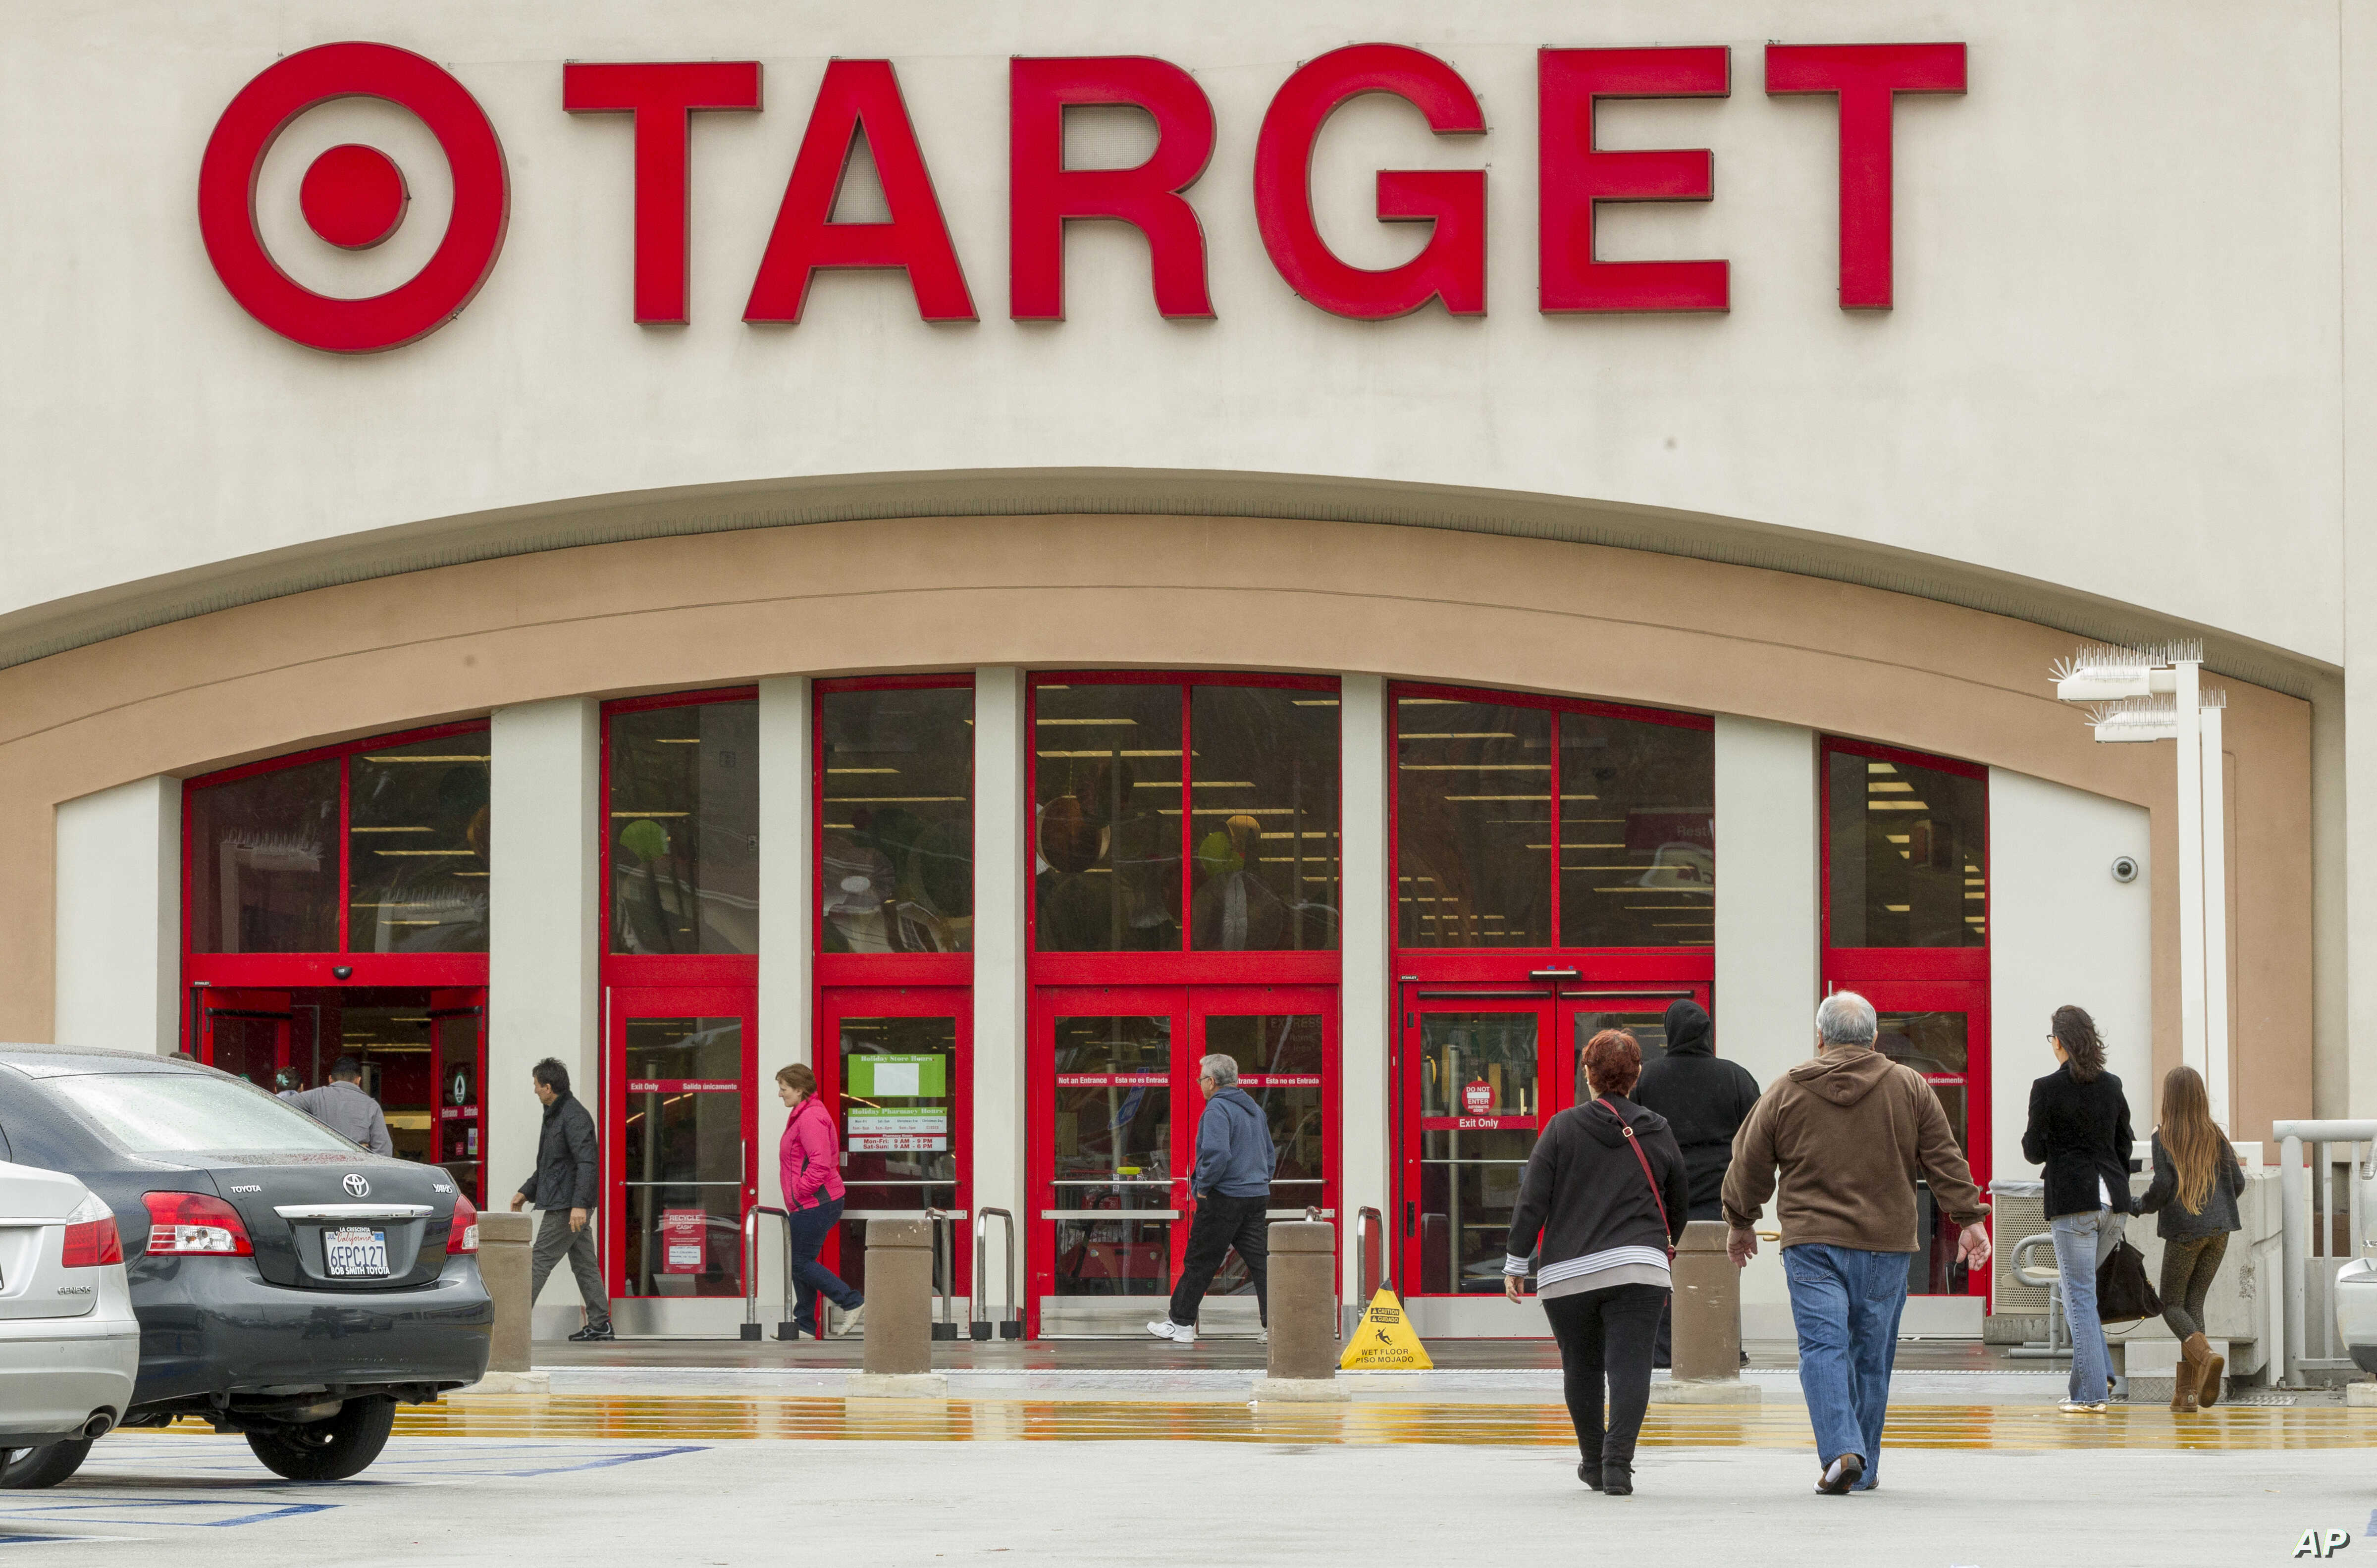 Target Confirms Point-of-Sale Attacks | Voice of America